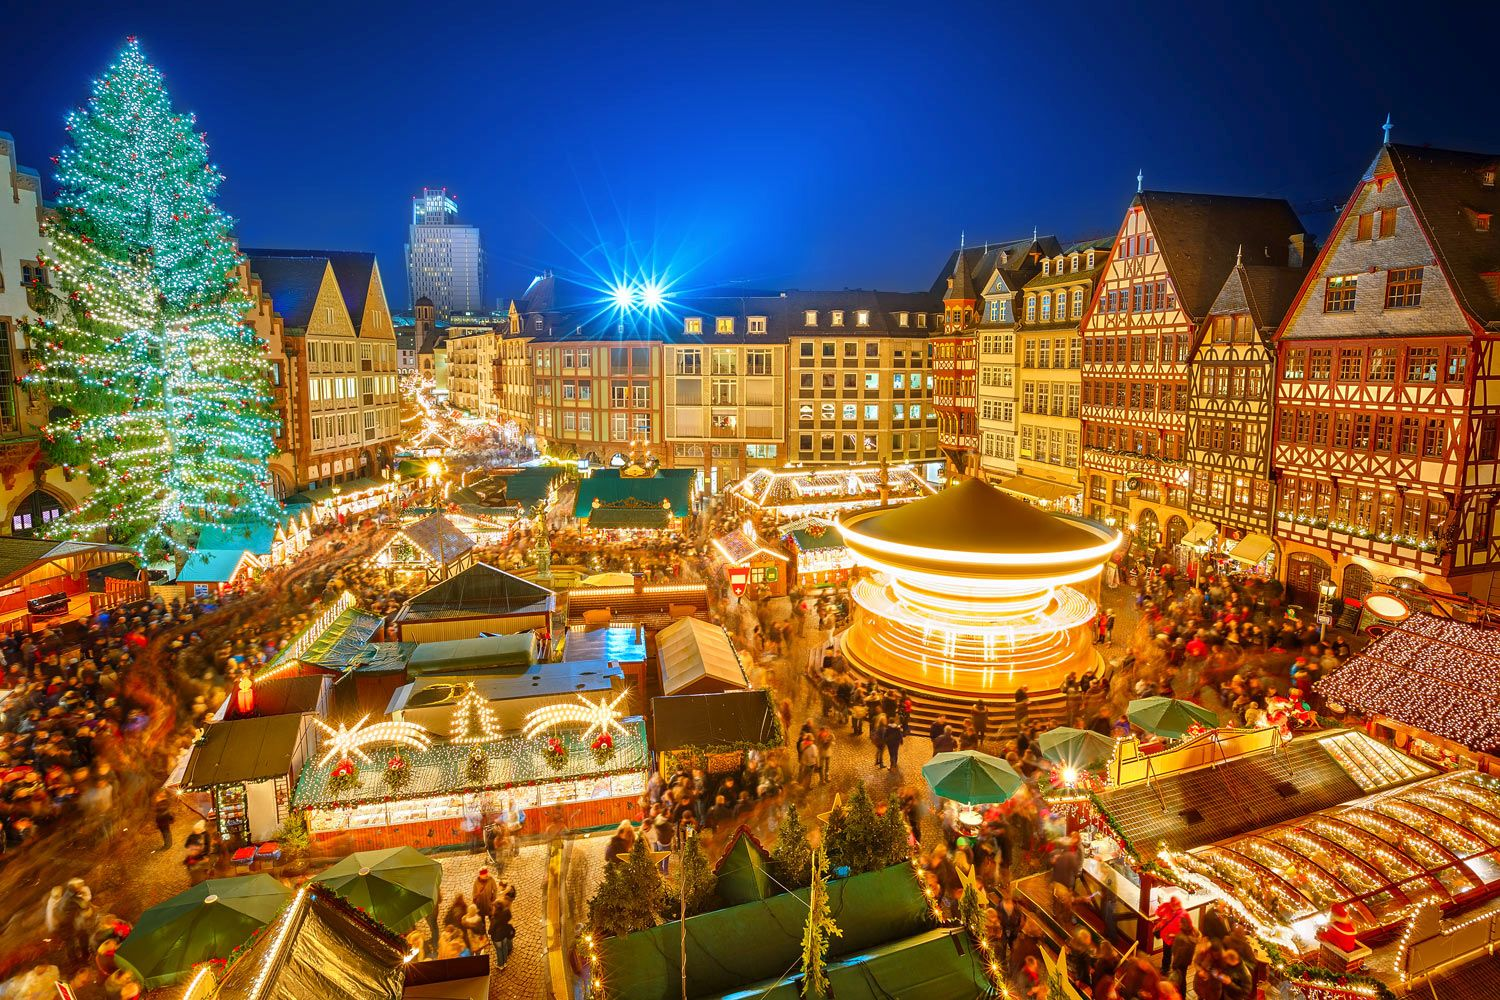 The 15 Best Christmas Markets To Visit In Germany In 2019